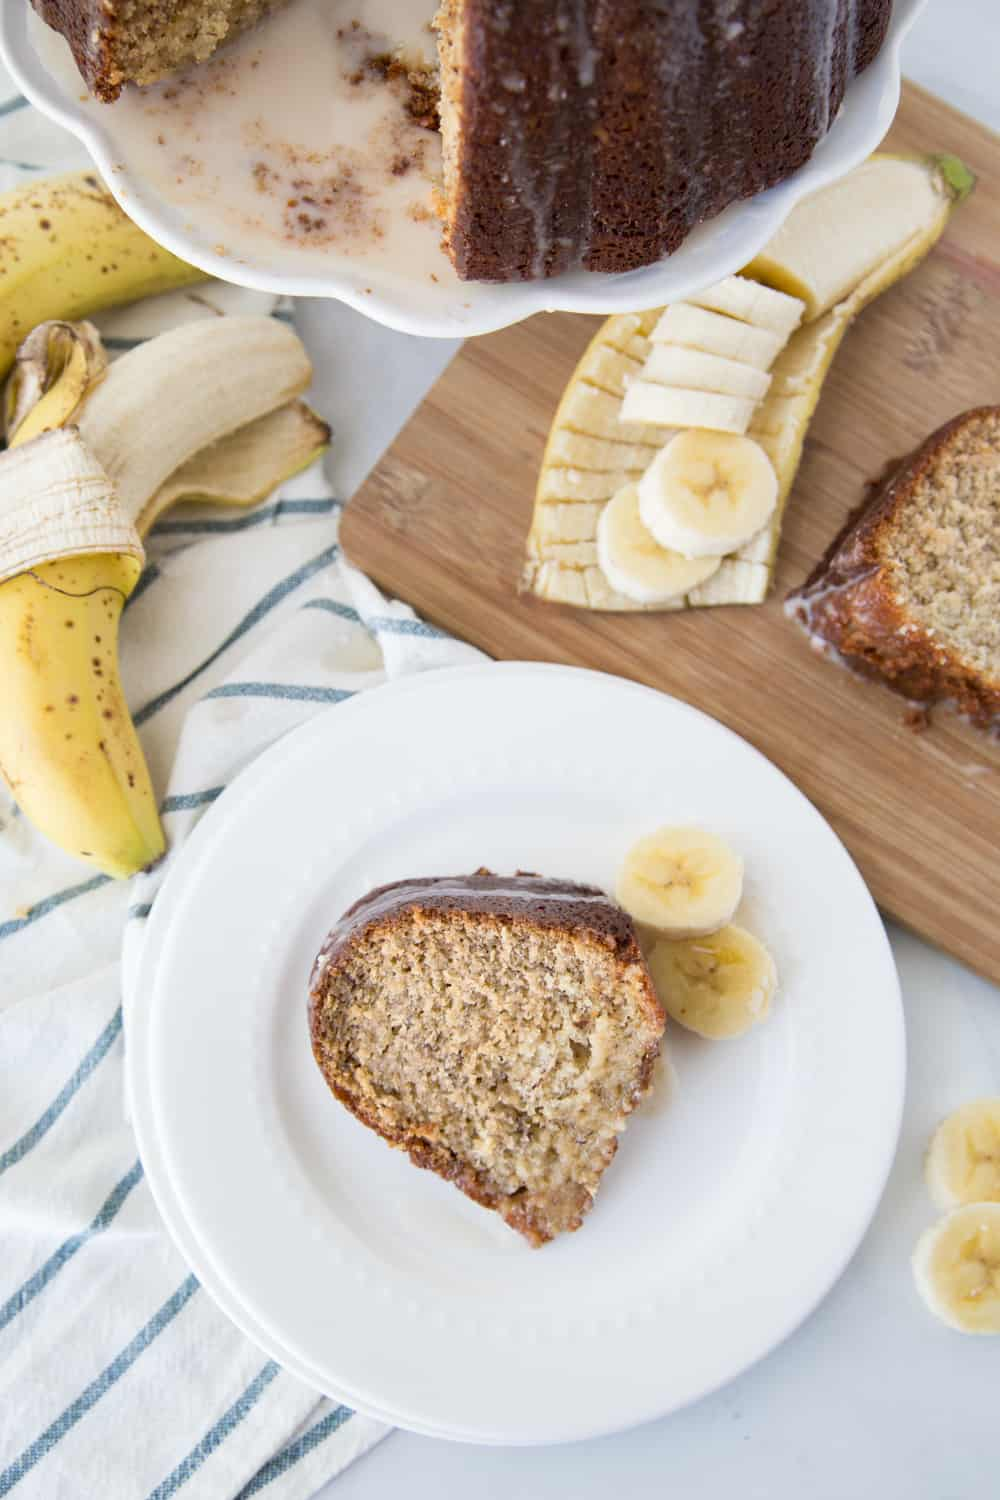 Banana cake on a white plate with bananas sliced as garnish and a beautiful cutting board under it.